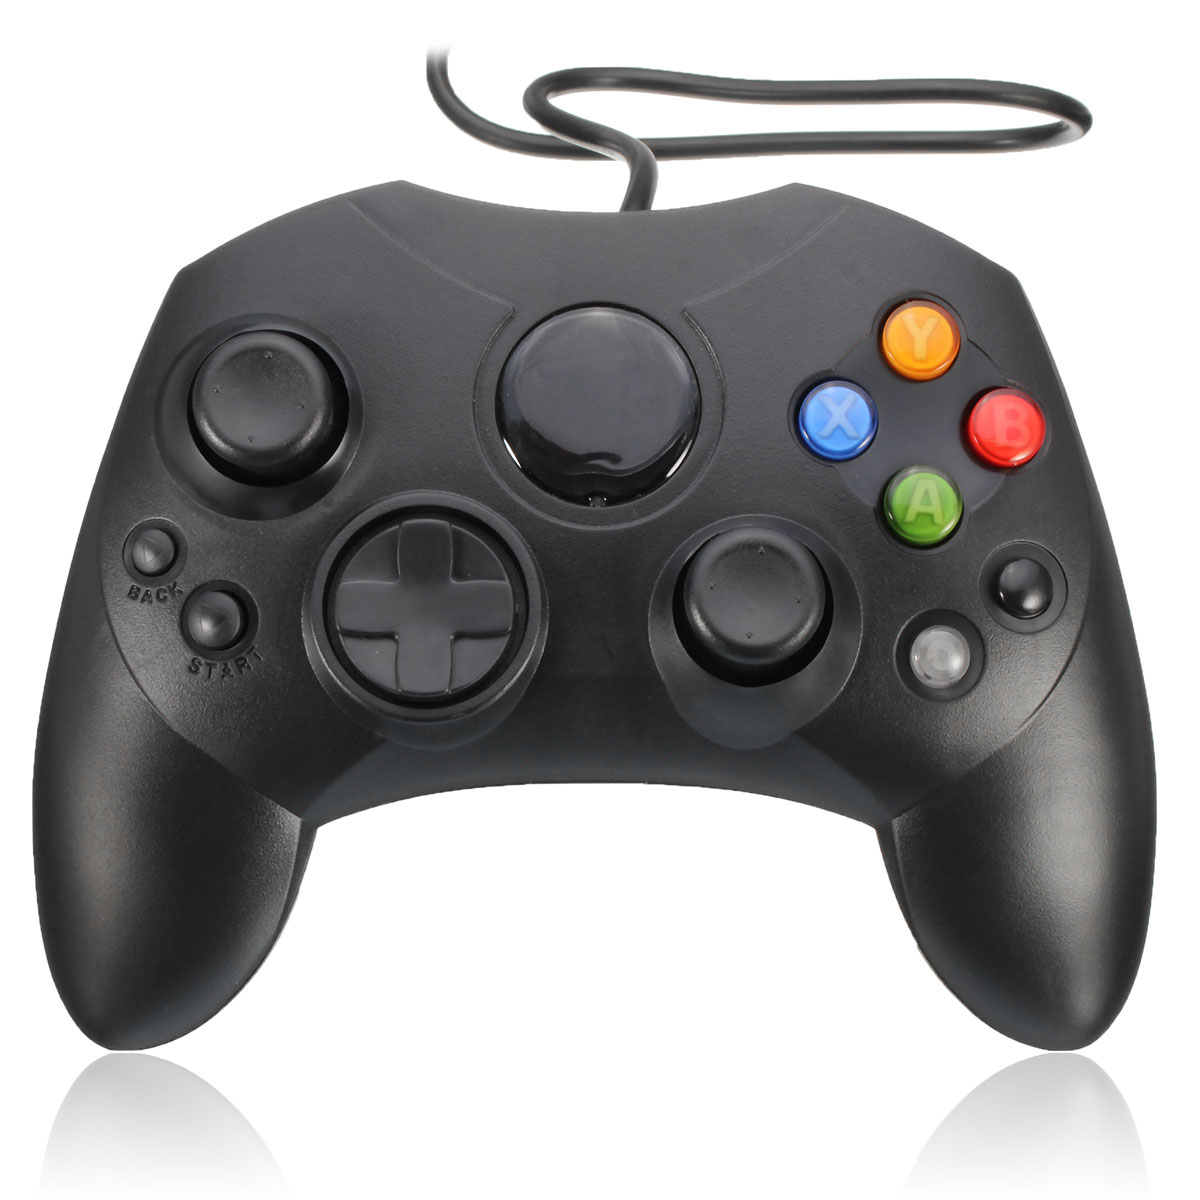 Black Wired Classic Gamepad Joypad Game Controller For Xbox Cons